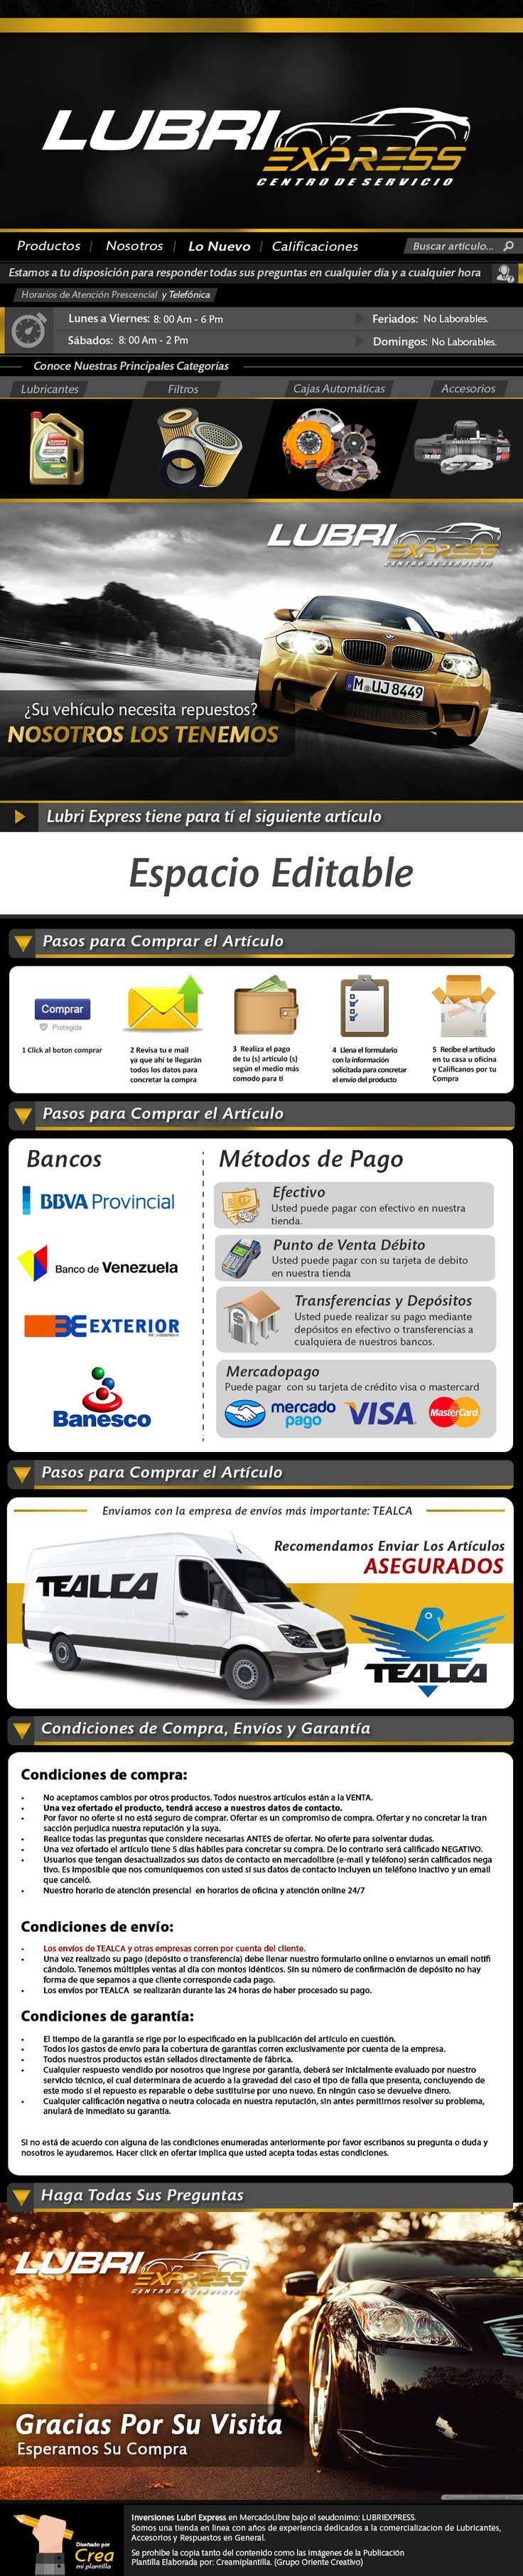 17 best images about plantillas mercadolibre on pinterest for Disenar oficina online